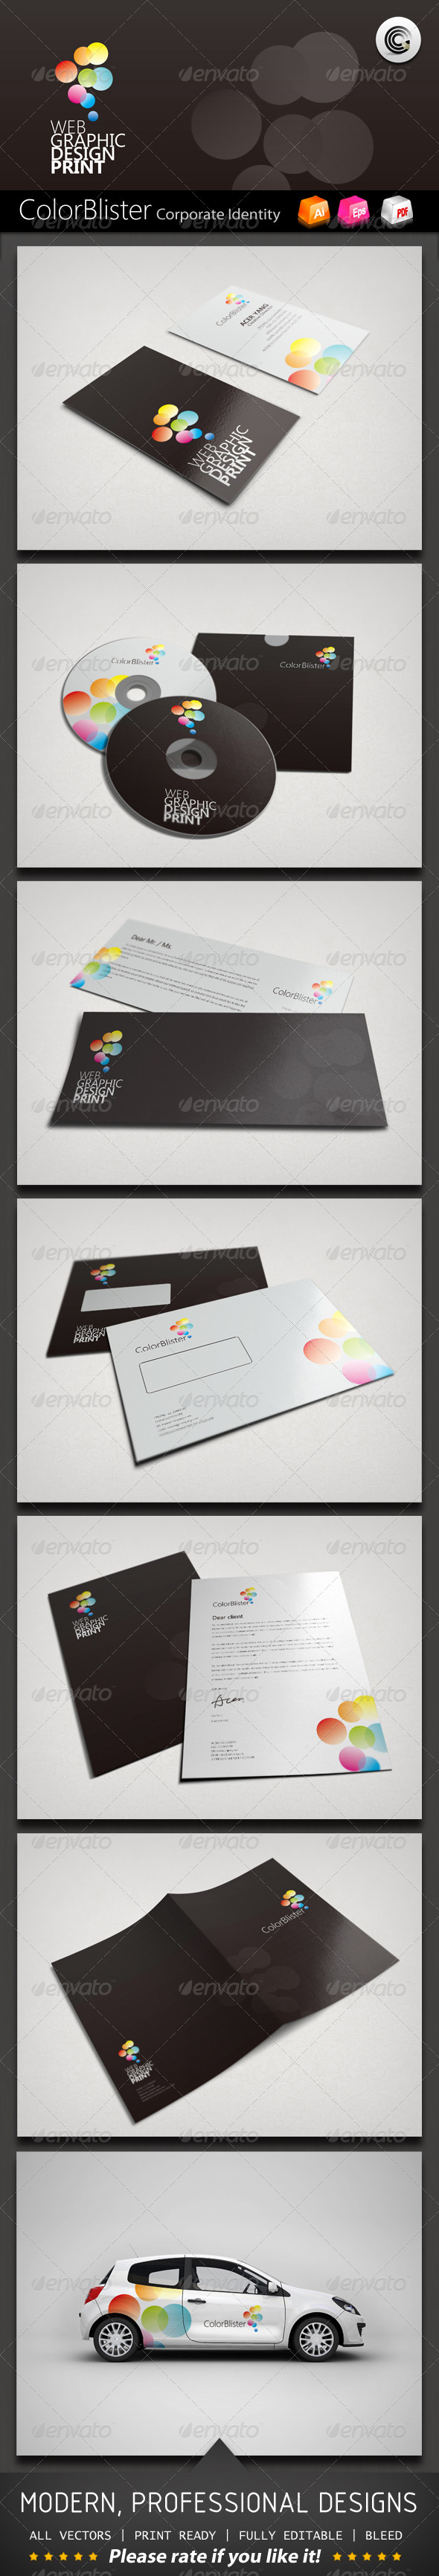 Color Blister Corporate Identity - Stationery Print Templates